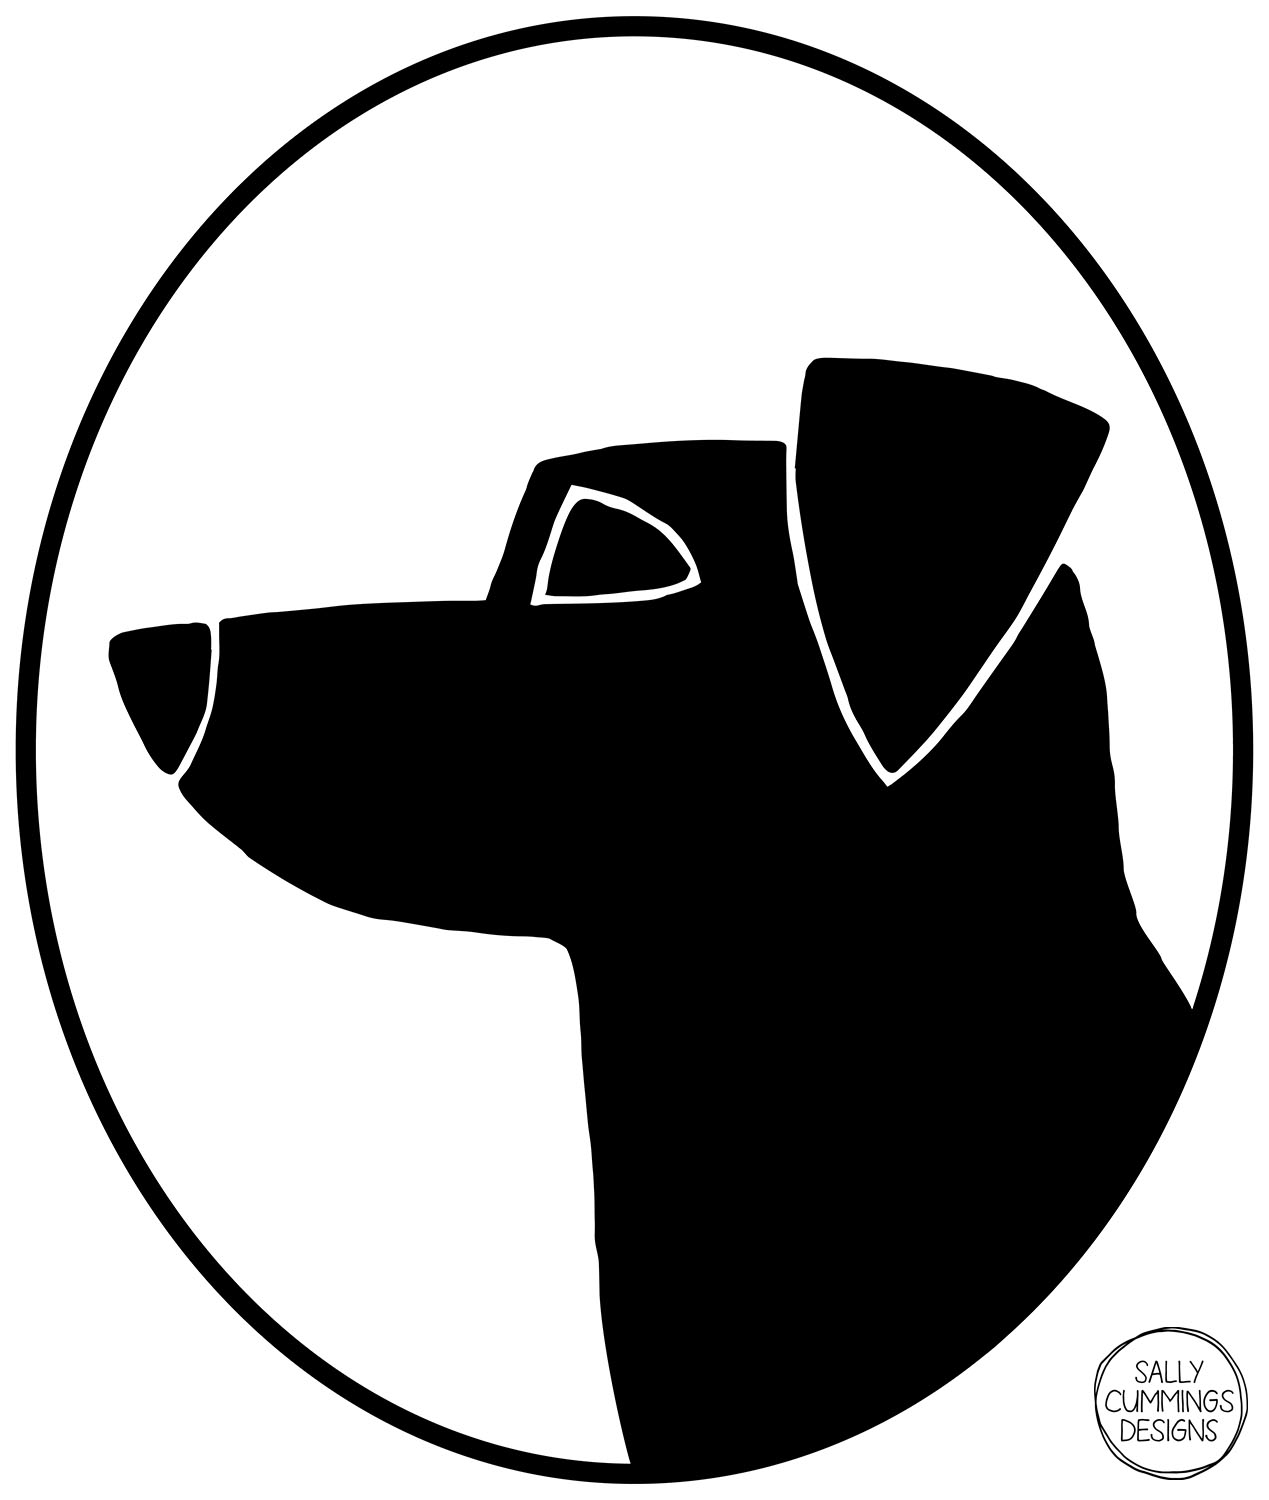 Sally Cummings Designs - Dog Cameo Oval 2 (Jack Russell Terrier)